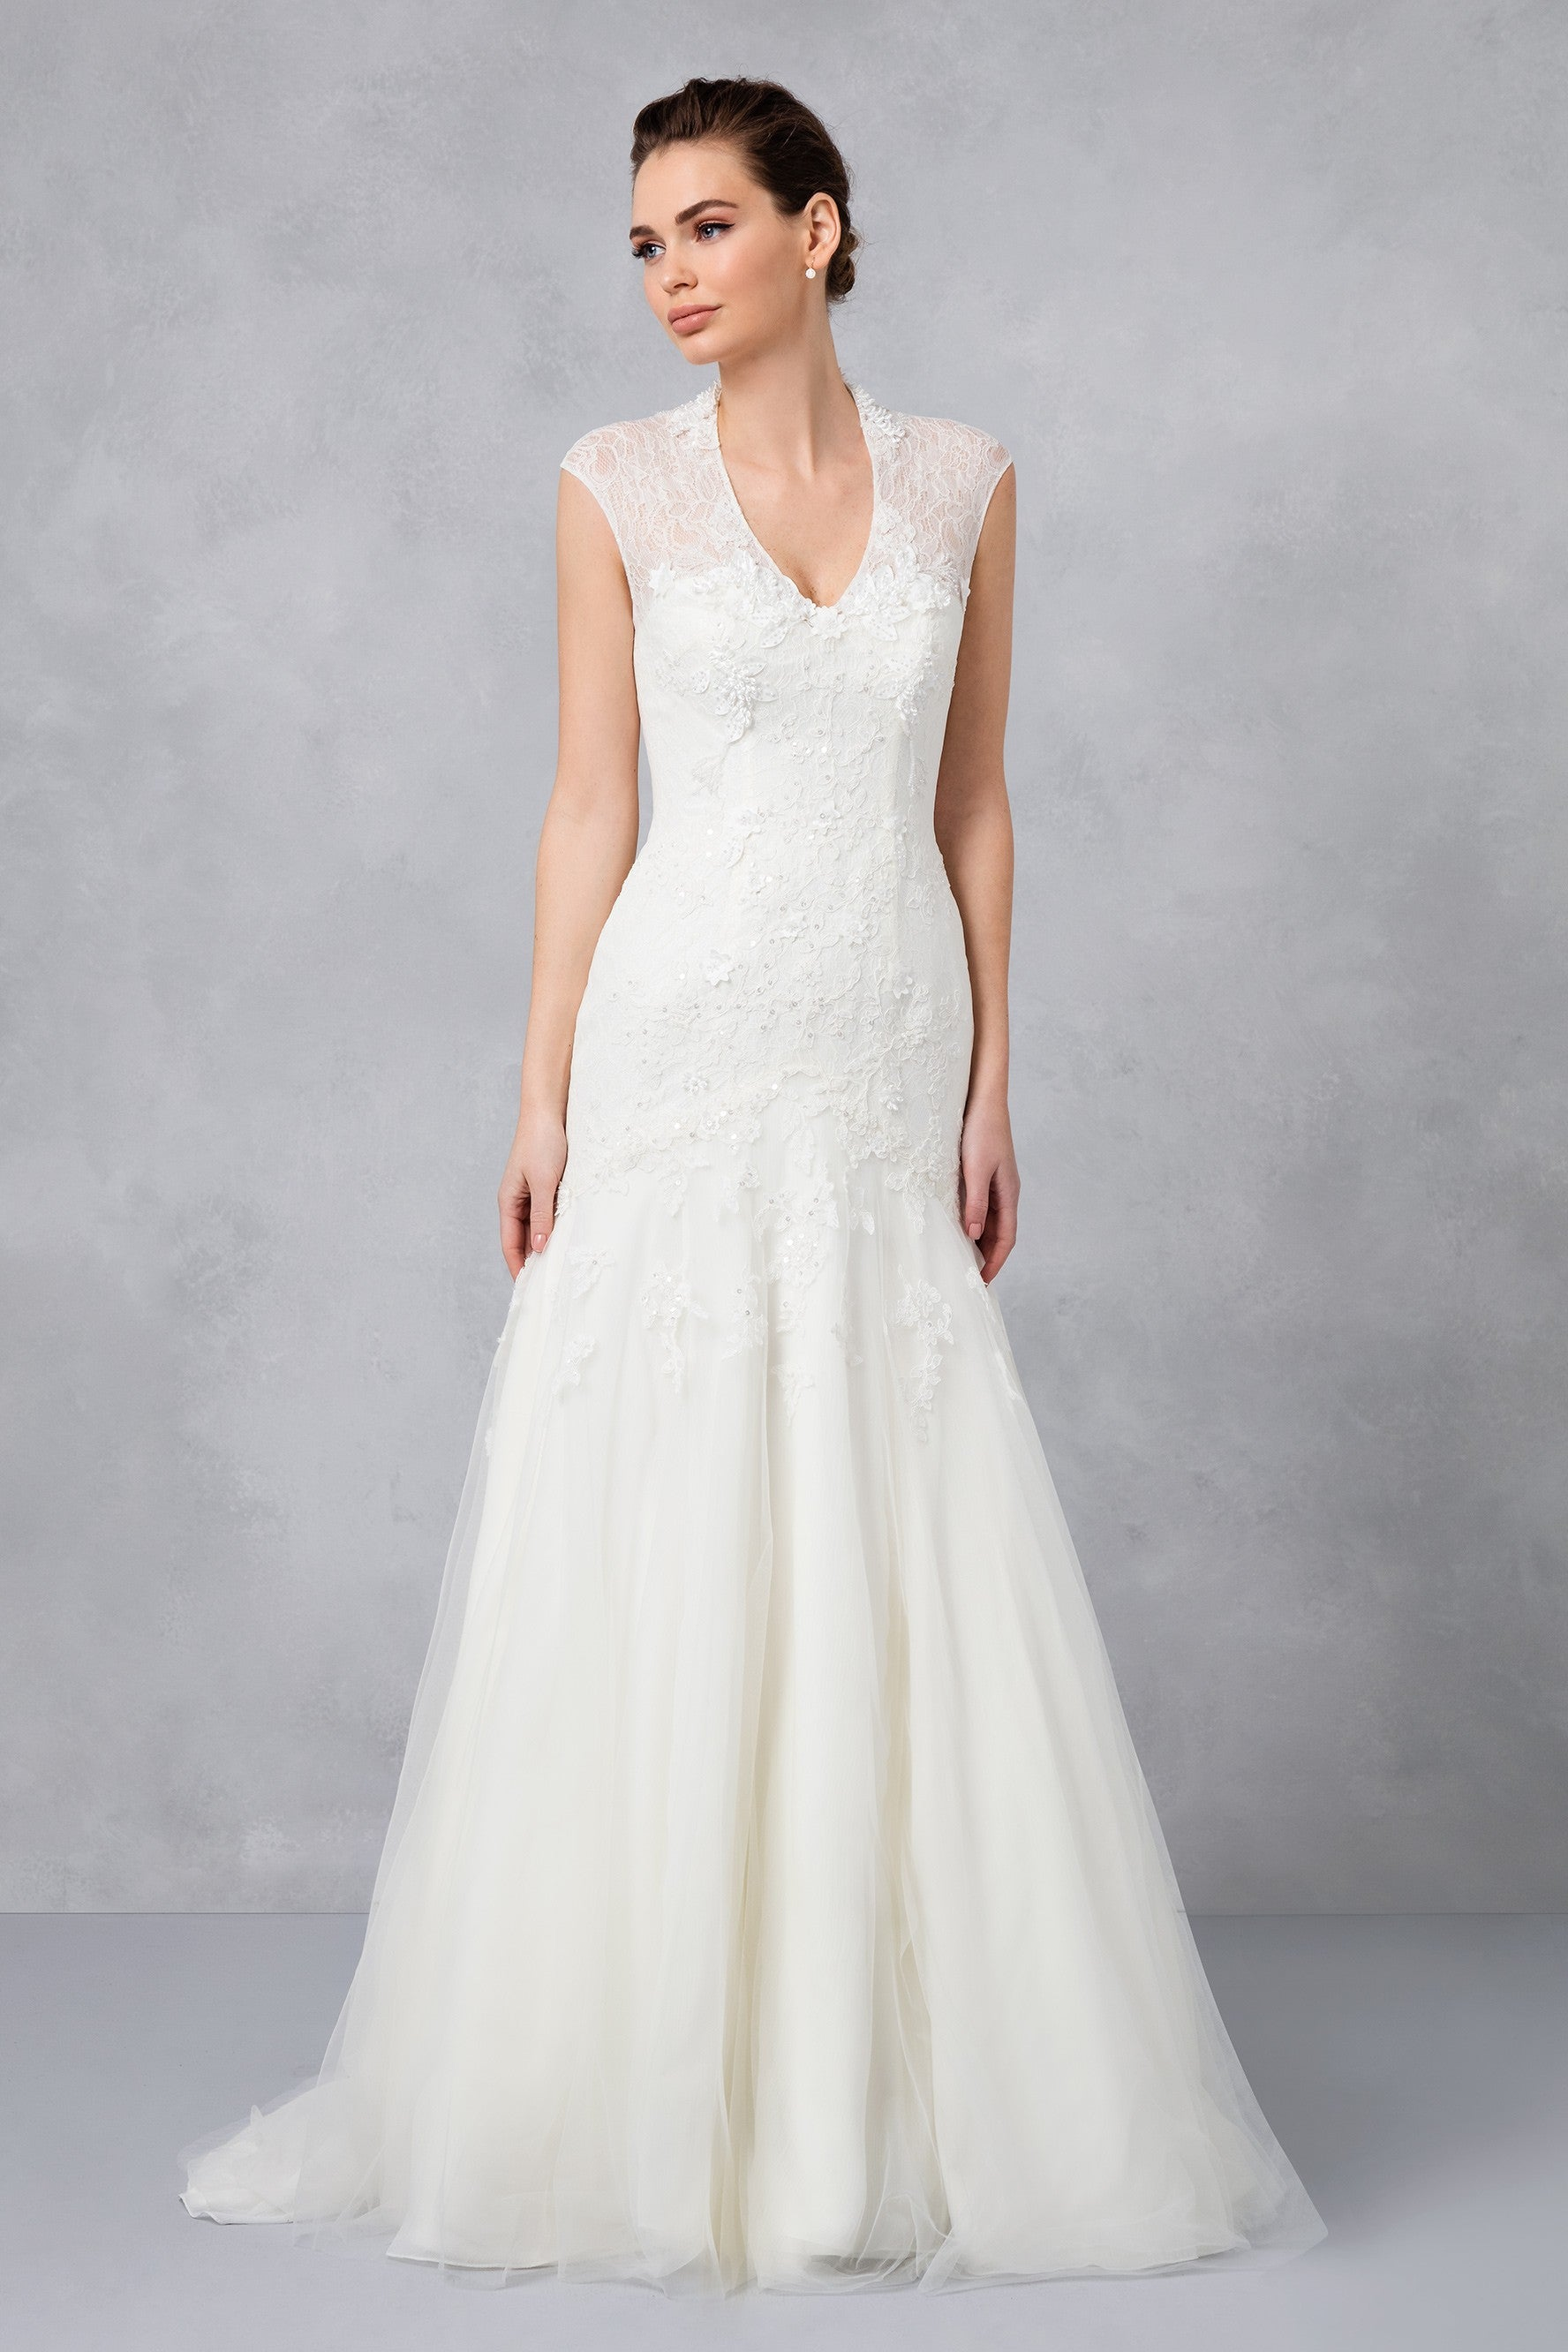 Cap Sleeve Lace Wedding Dress-MS251005